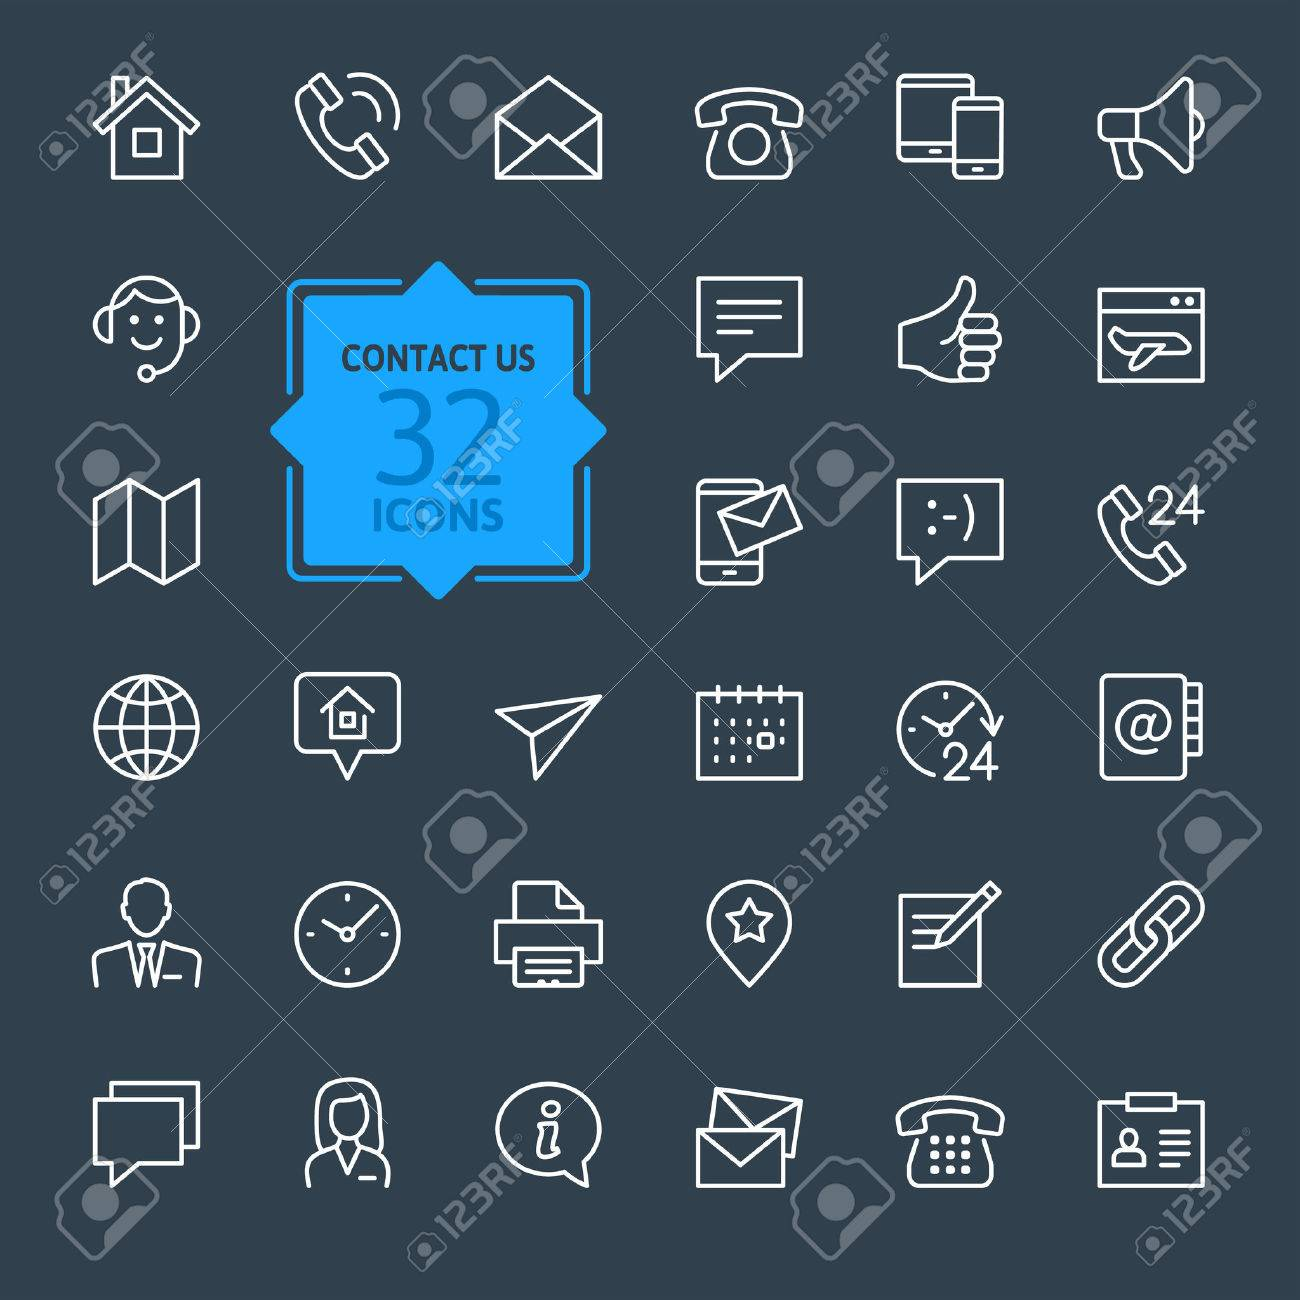 Outline web icons set Contact us - 41785761